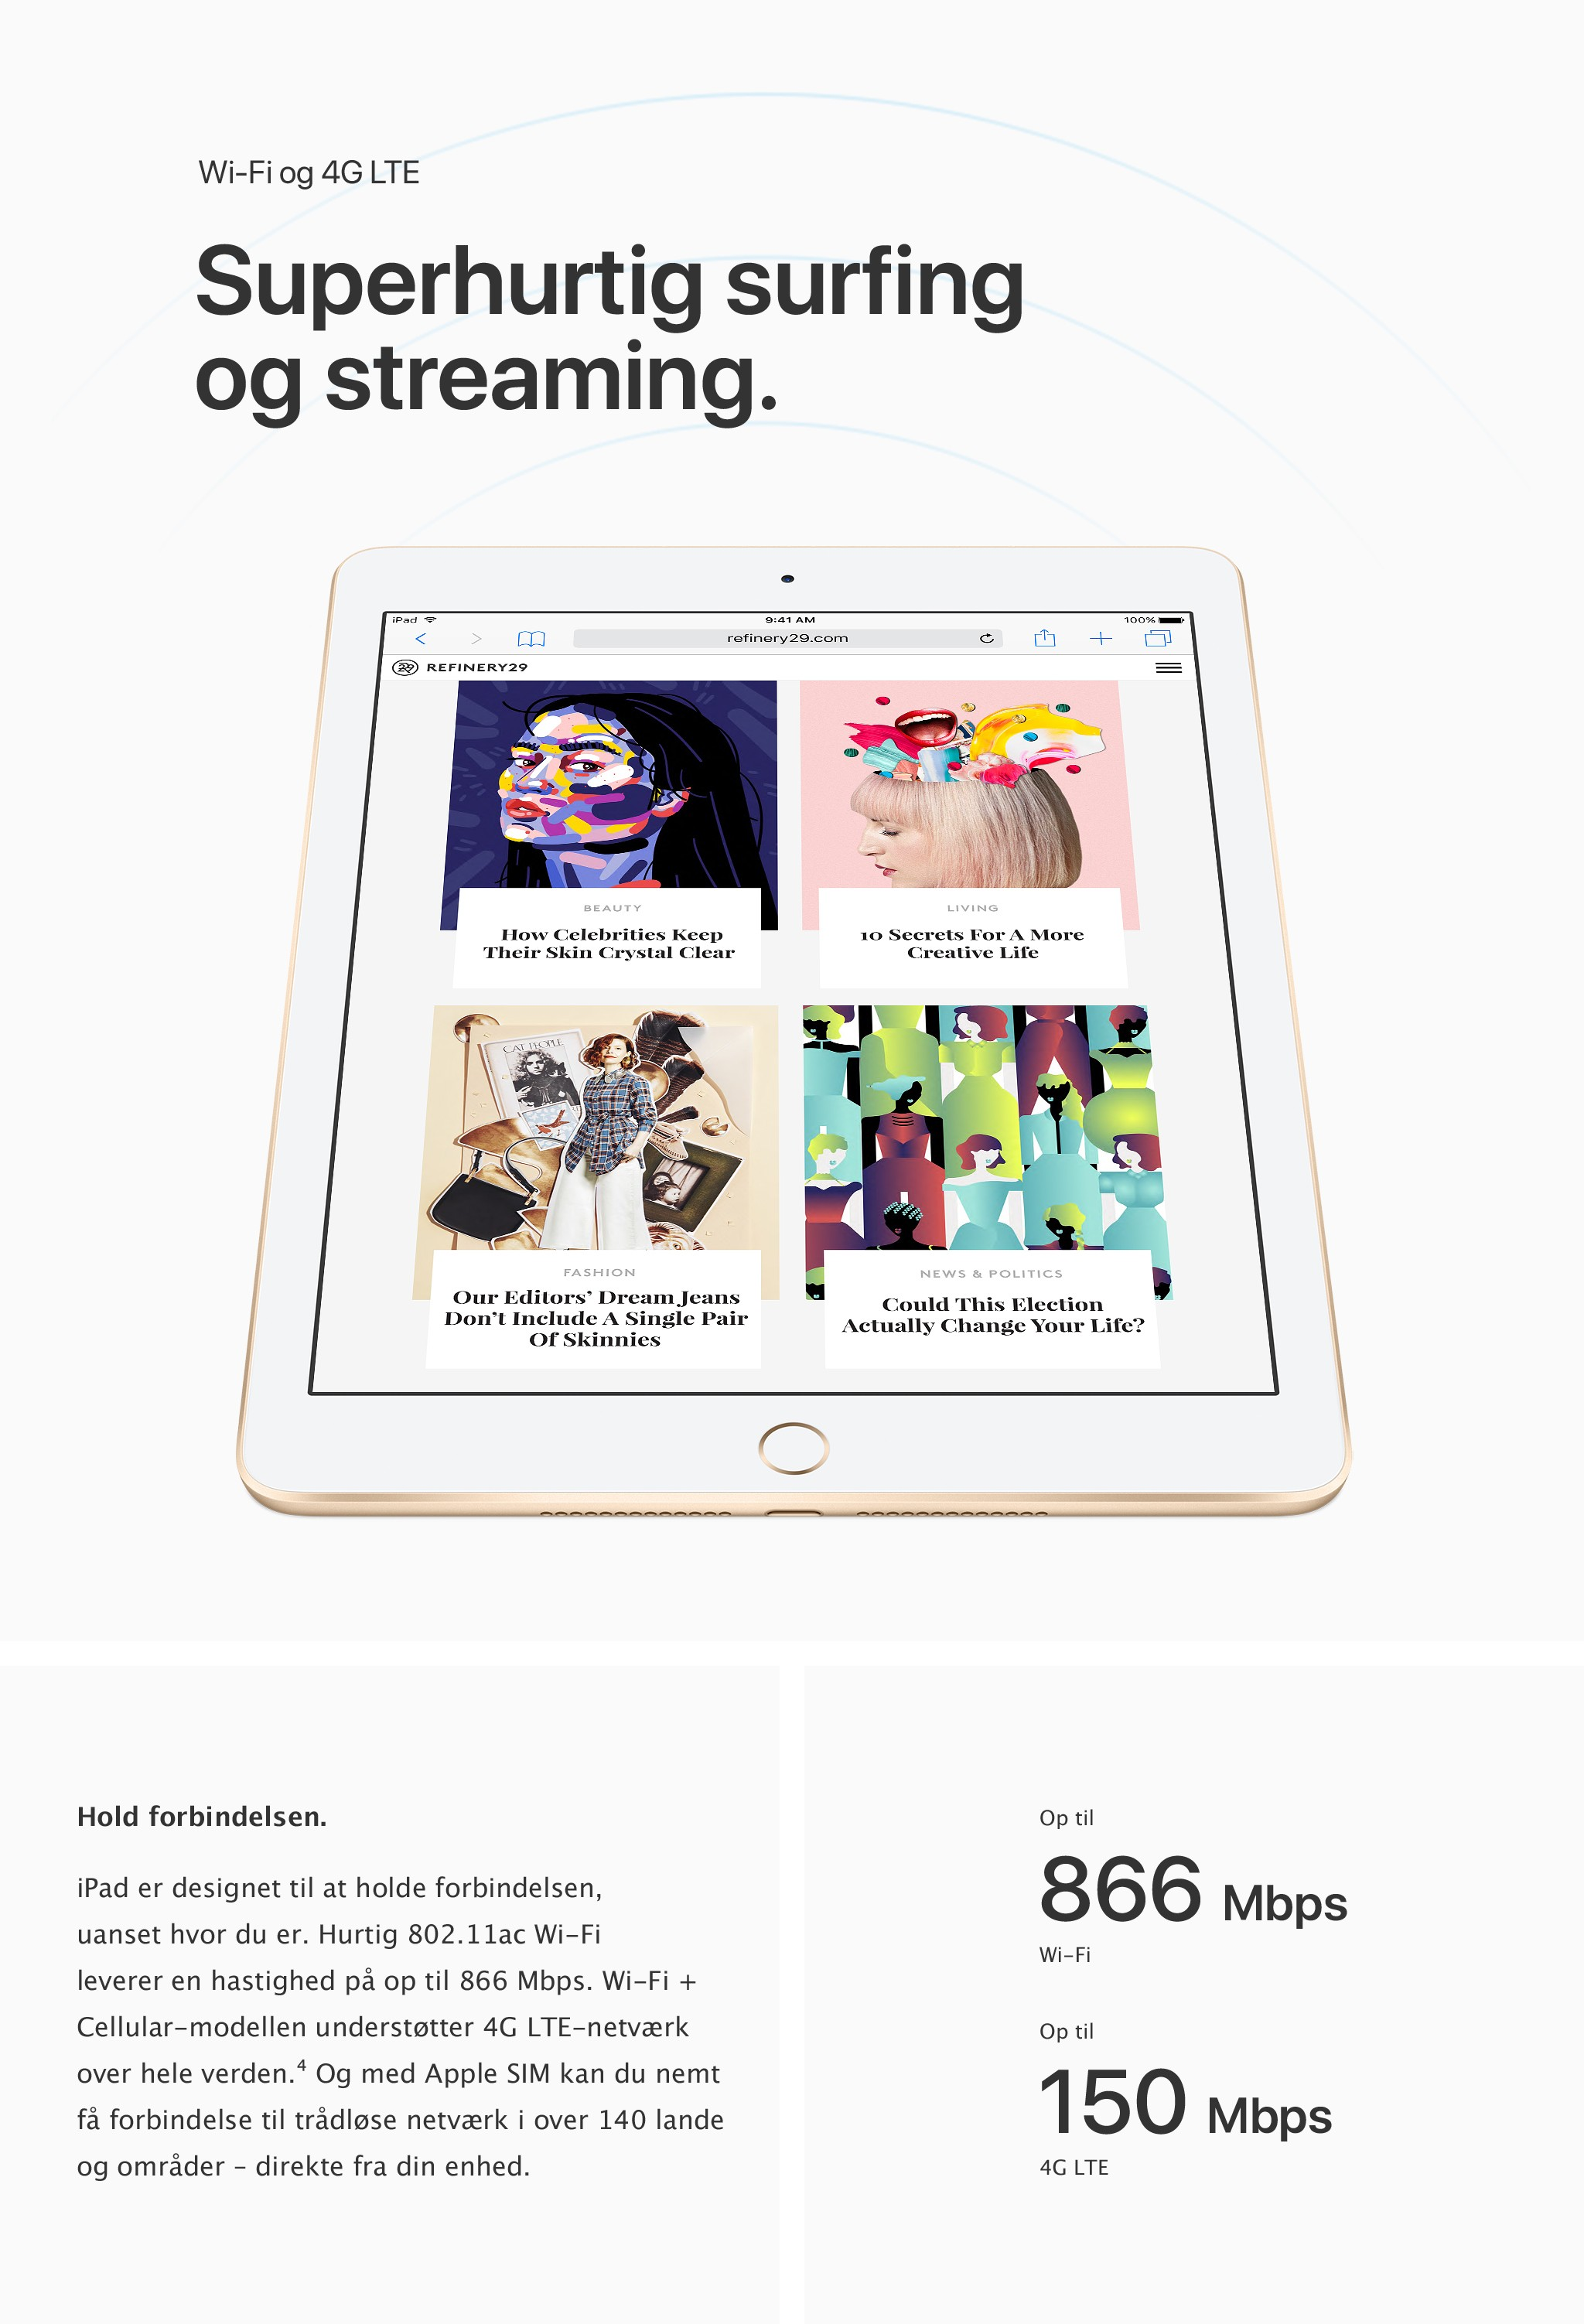 Med iPad vil du opleve superhurtig surfing og streaming